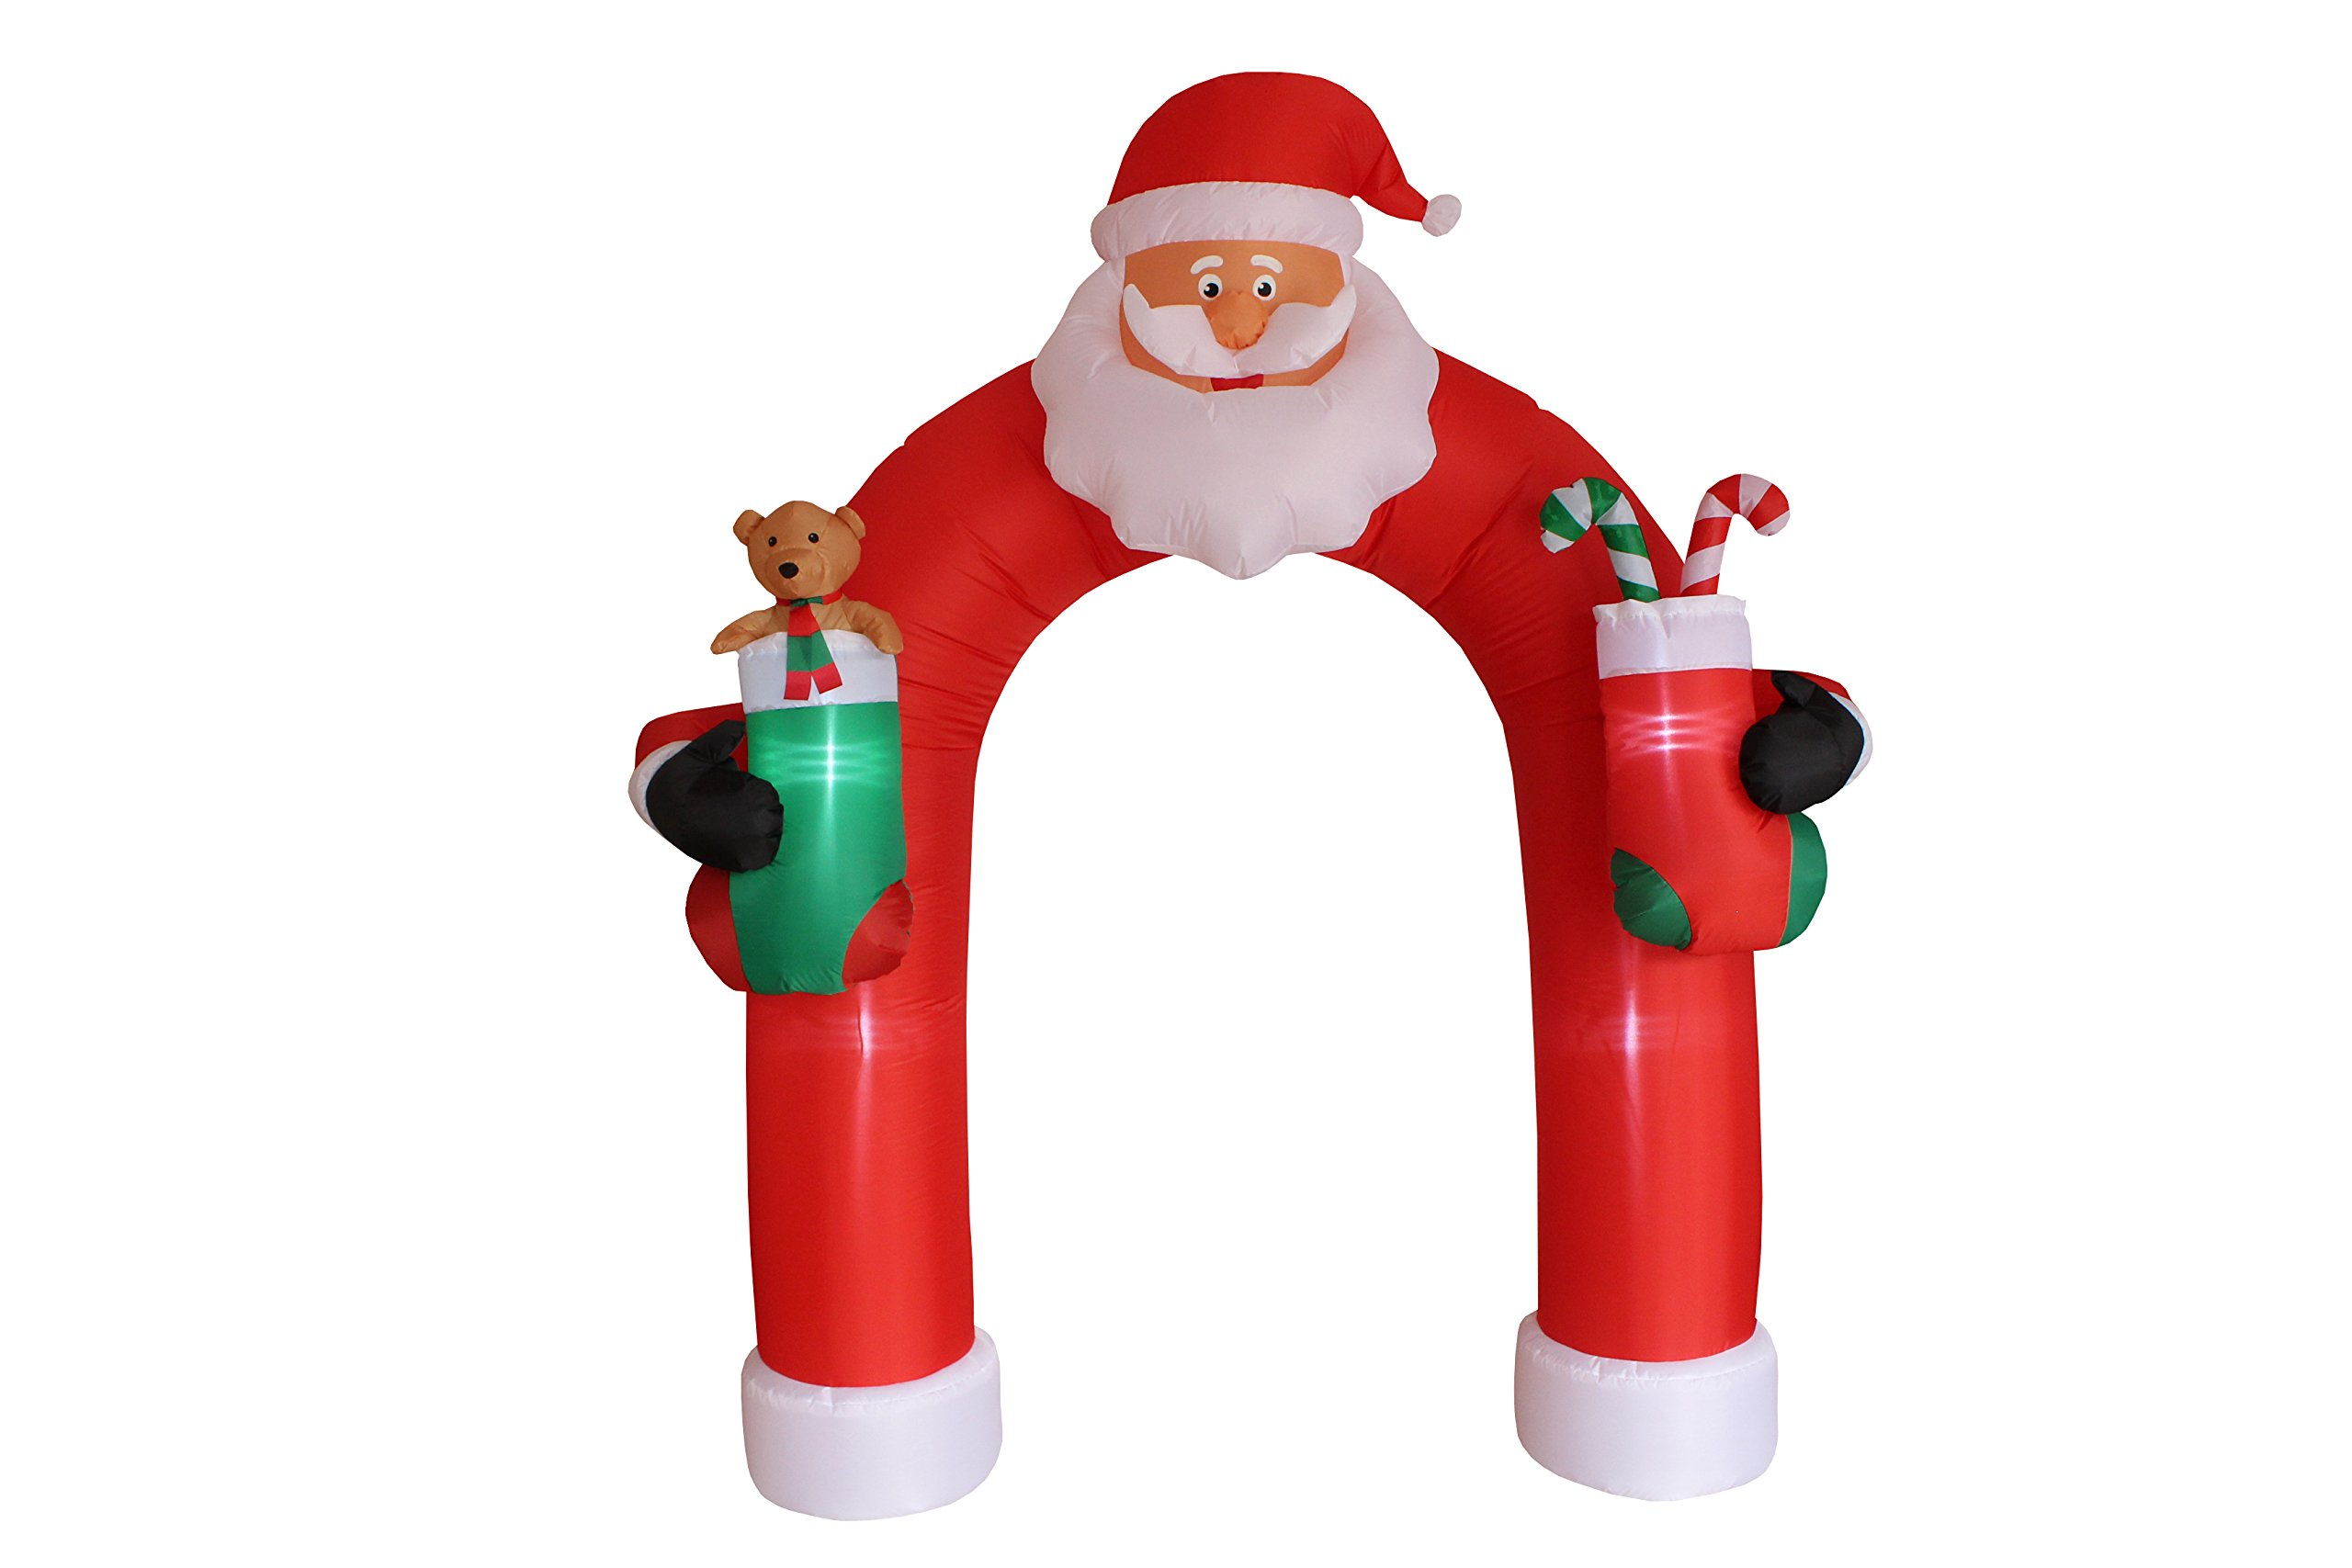 9 Foot Tall Christmas Inflatable Santa Claus Archway Arch with Teddy Bear Sugar Cane Cute Lights Lighted Blowup Party Decoration for Outdoor Indoor Home Garden Family Prop Yard